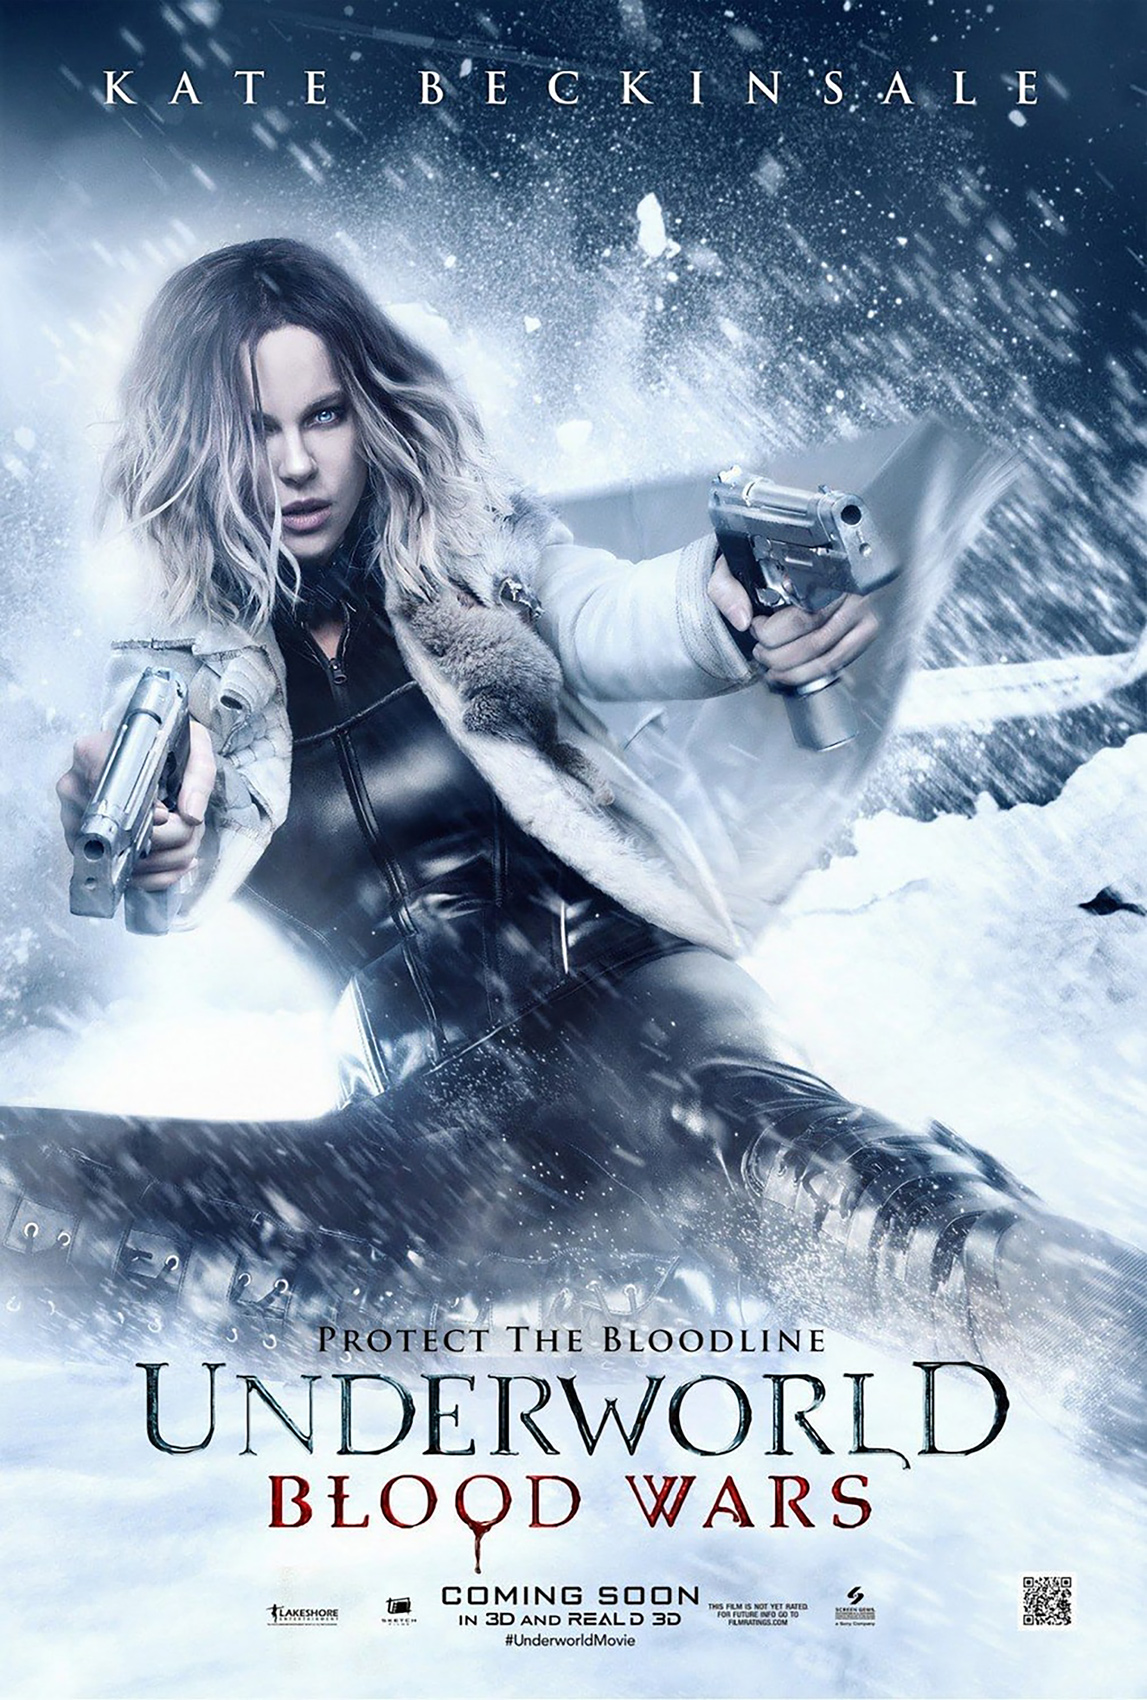 KateBeckinsale_Underworld_004